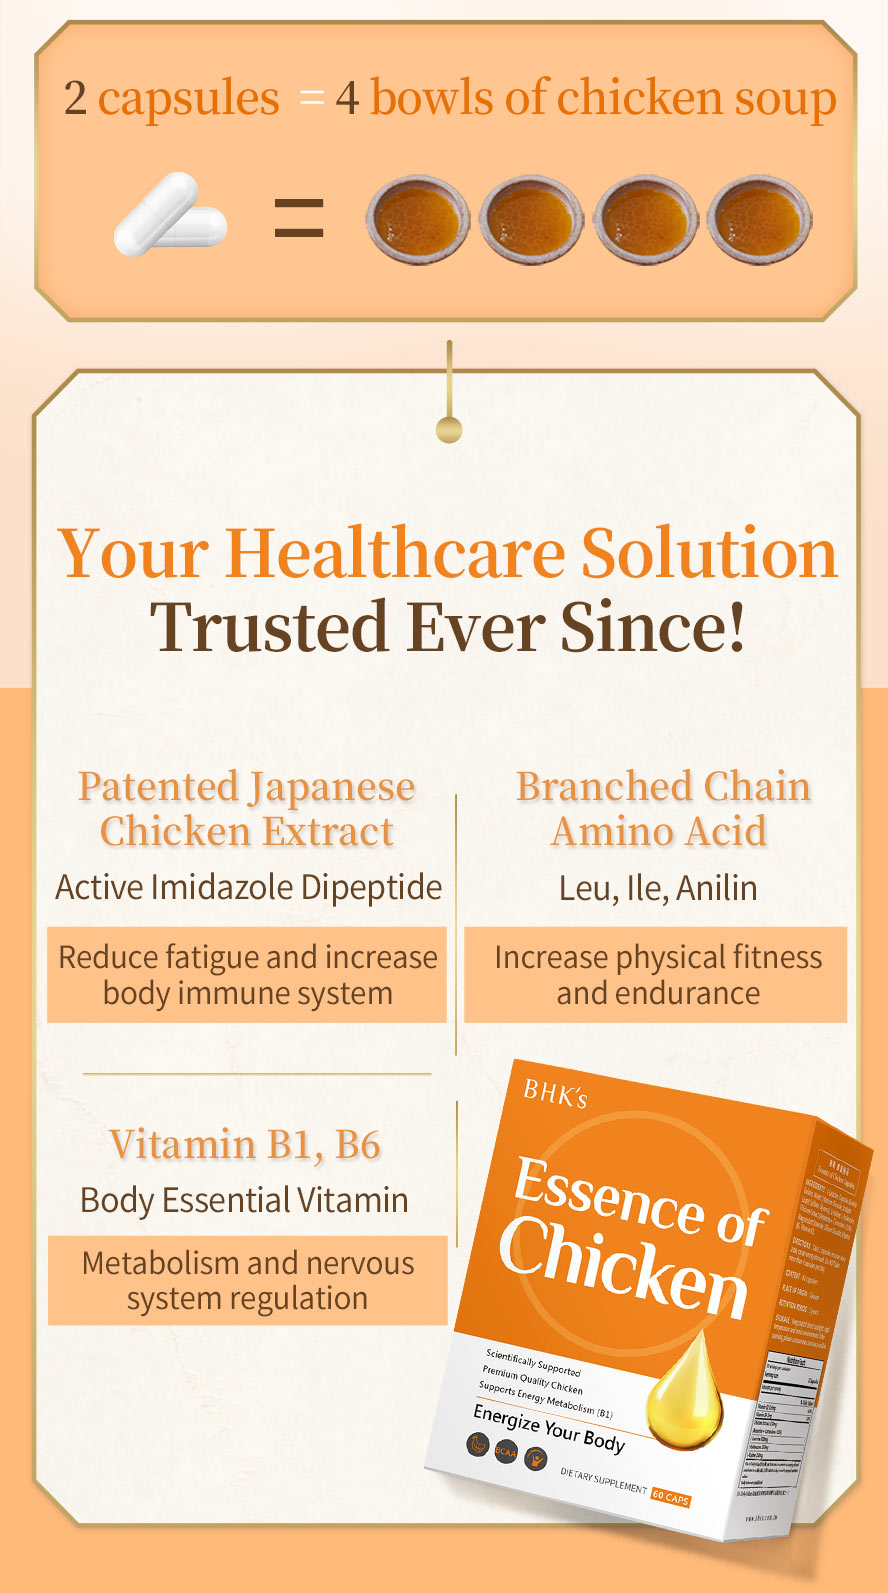 BHKs essence of chicken uses Japan patented chicken extraction. Every two capsules equal to four bags of traditional essence of chicken.